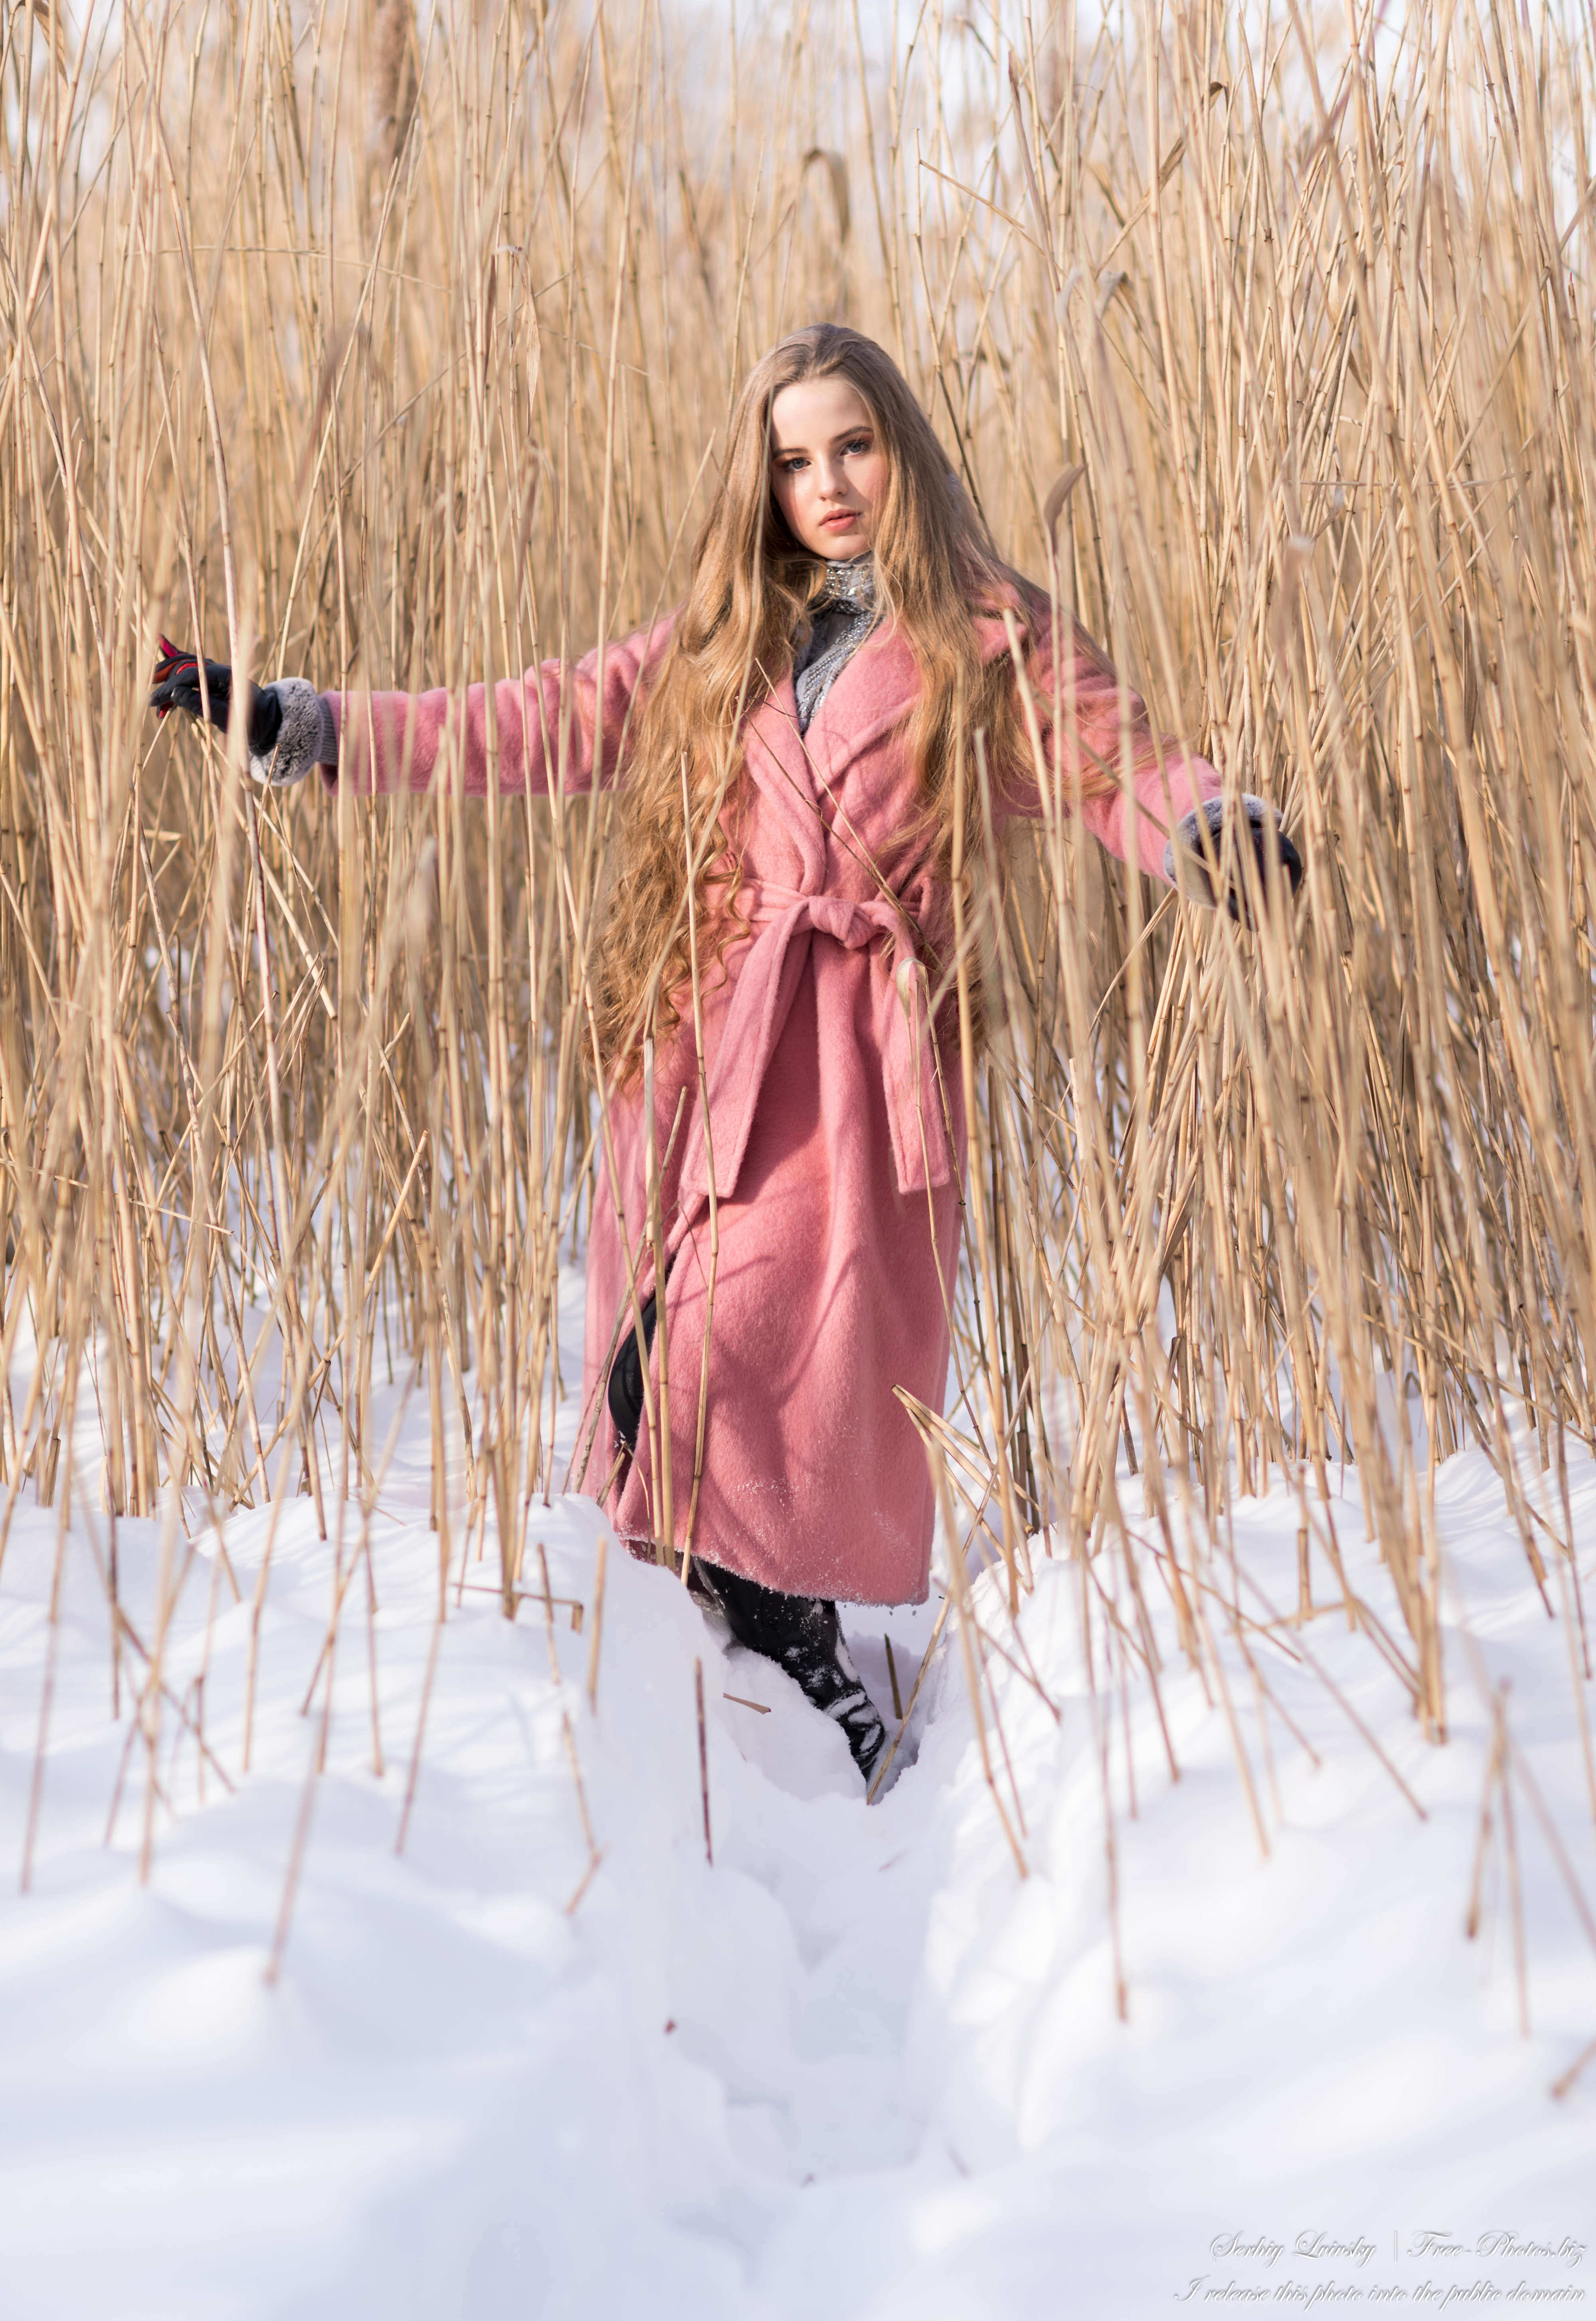 diana_an_18-year-old_natural_blonde_girl_photographed_by_serhiy_lvivsky_in_feb_2021_40